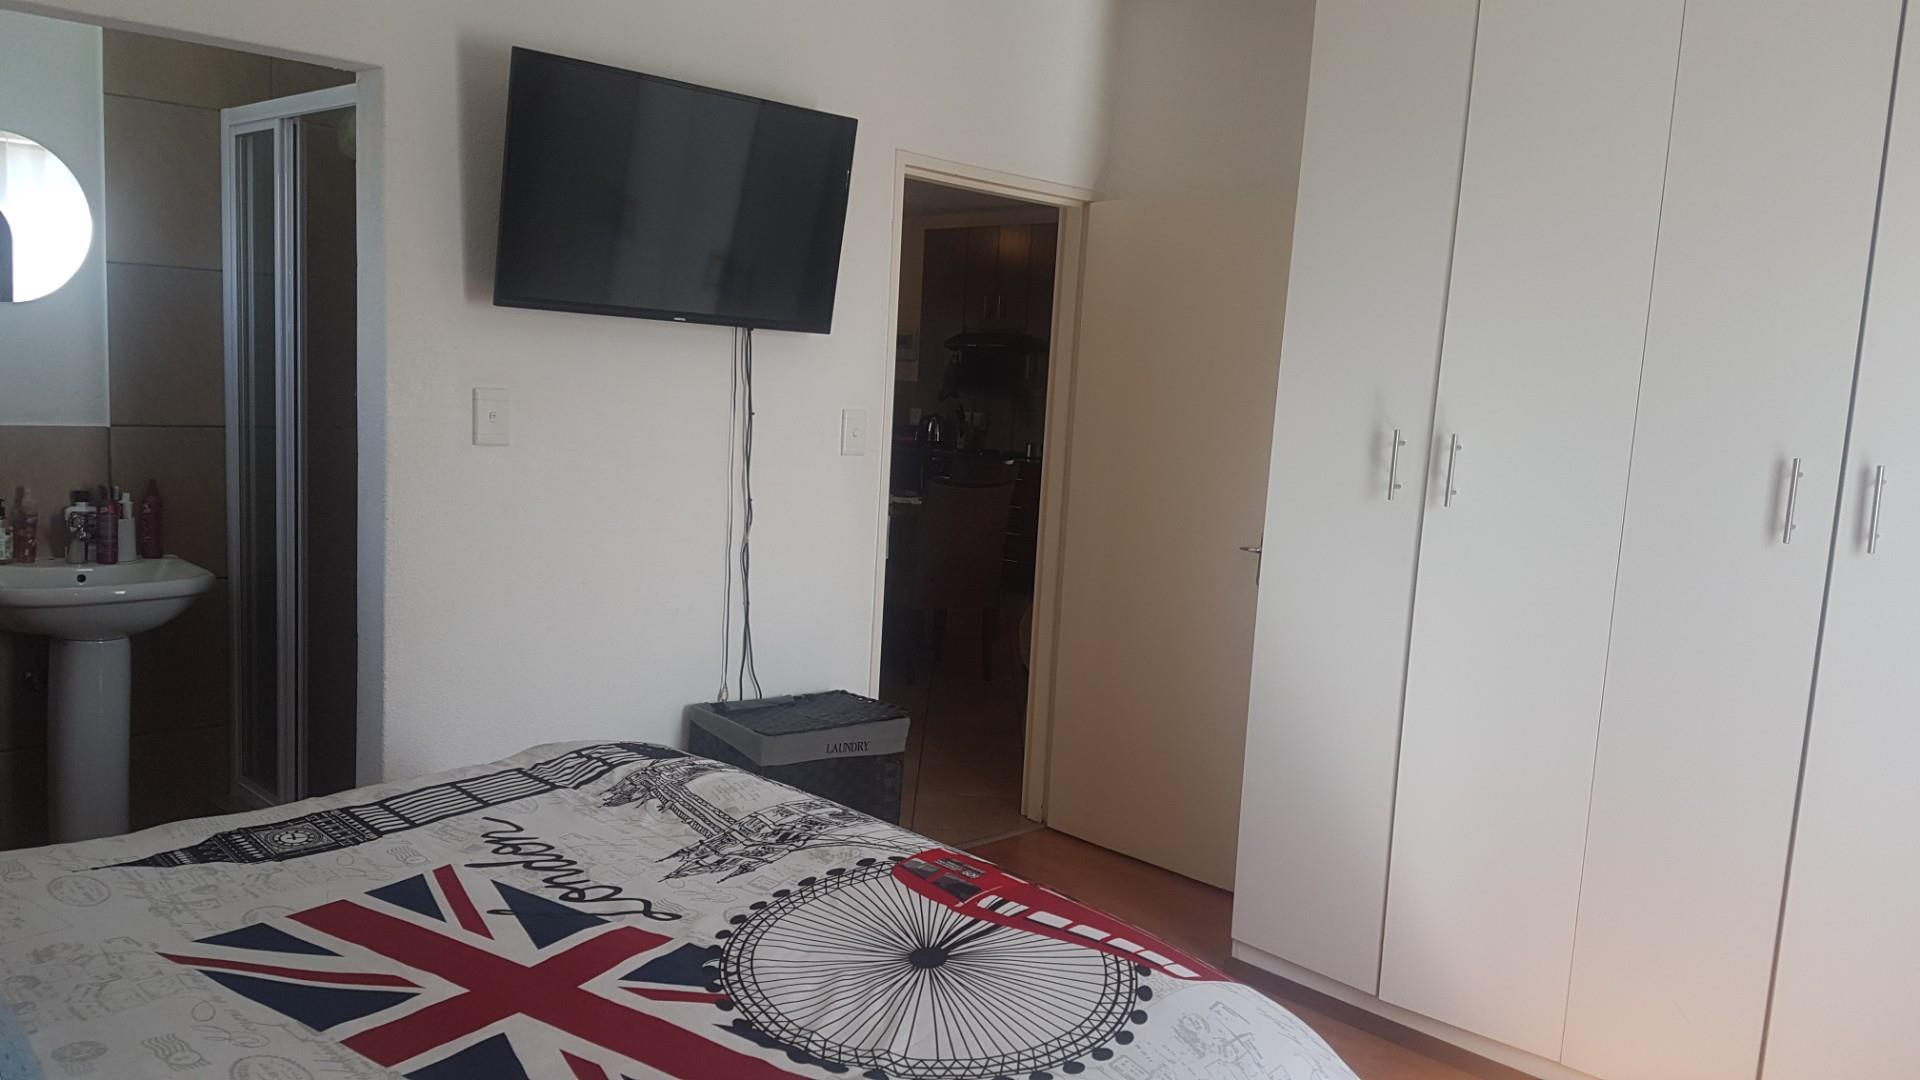 3 Bedroom Apartment / Flat For Sale in Albertsdal